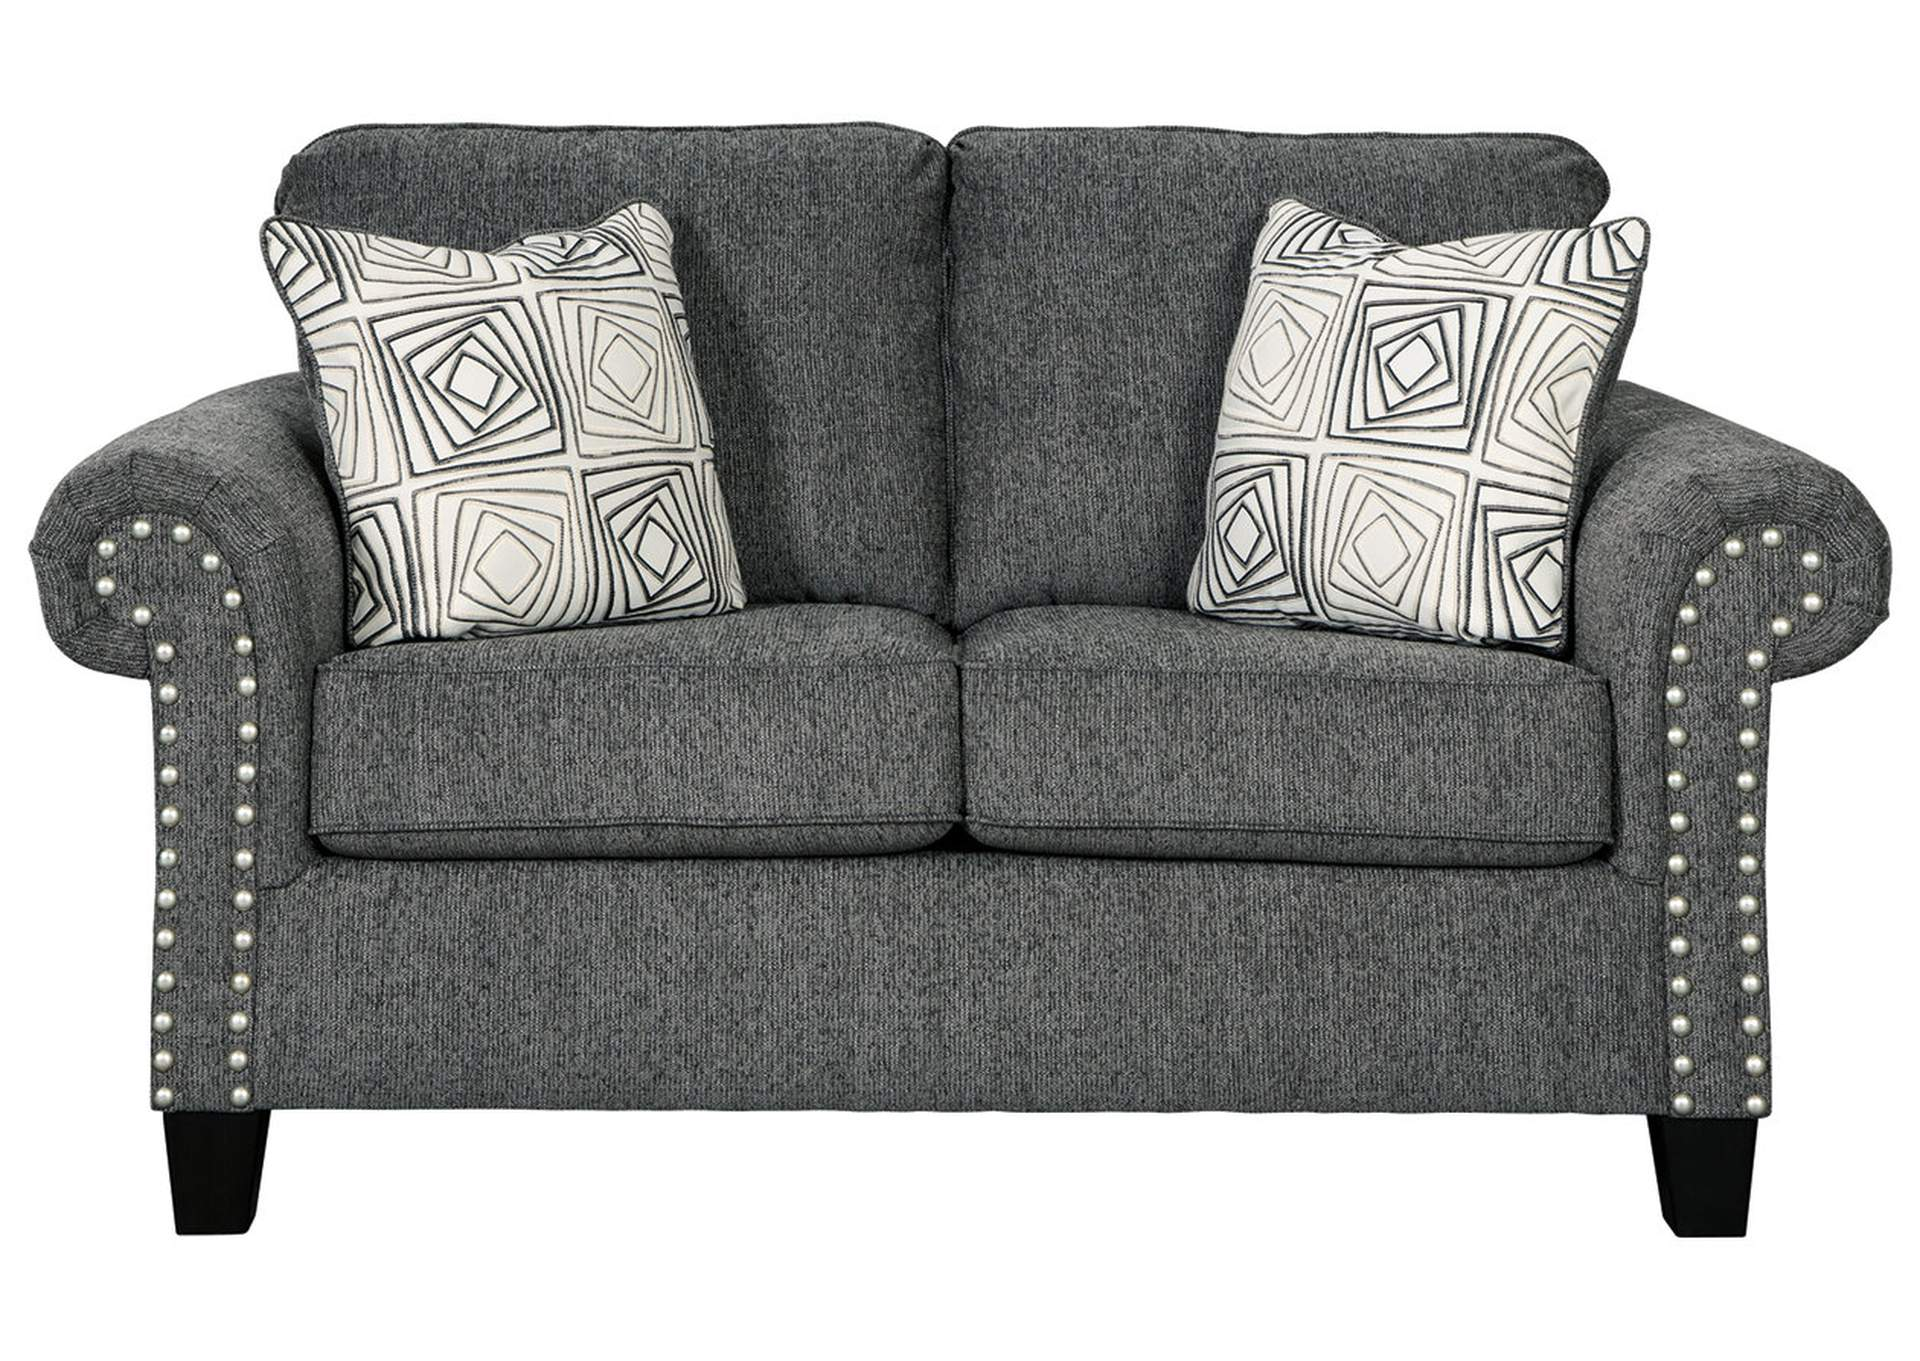 Agleno Charcoal Loveseat,Benchcraft